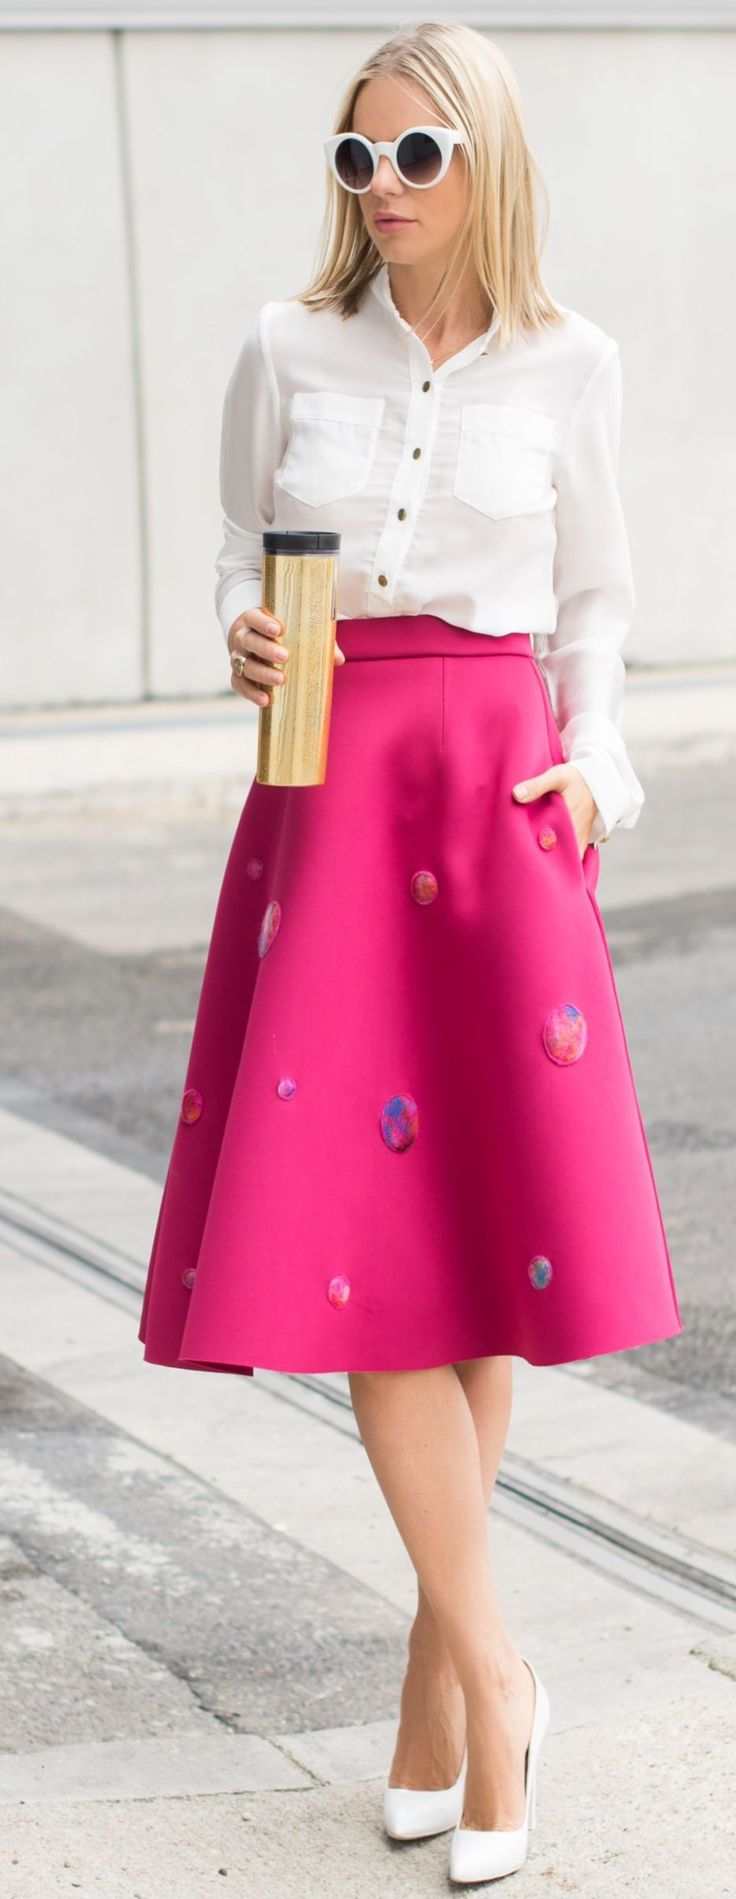 Catalina Grama Embellishes Pink A-skirt Coffee To Go Fall Inspo